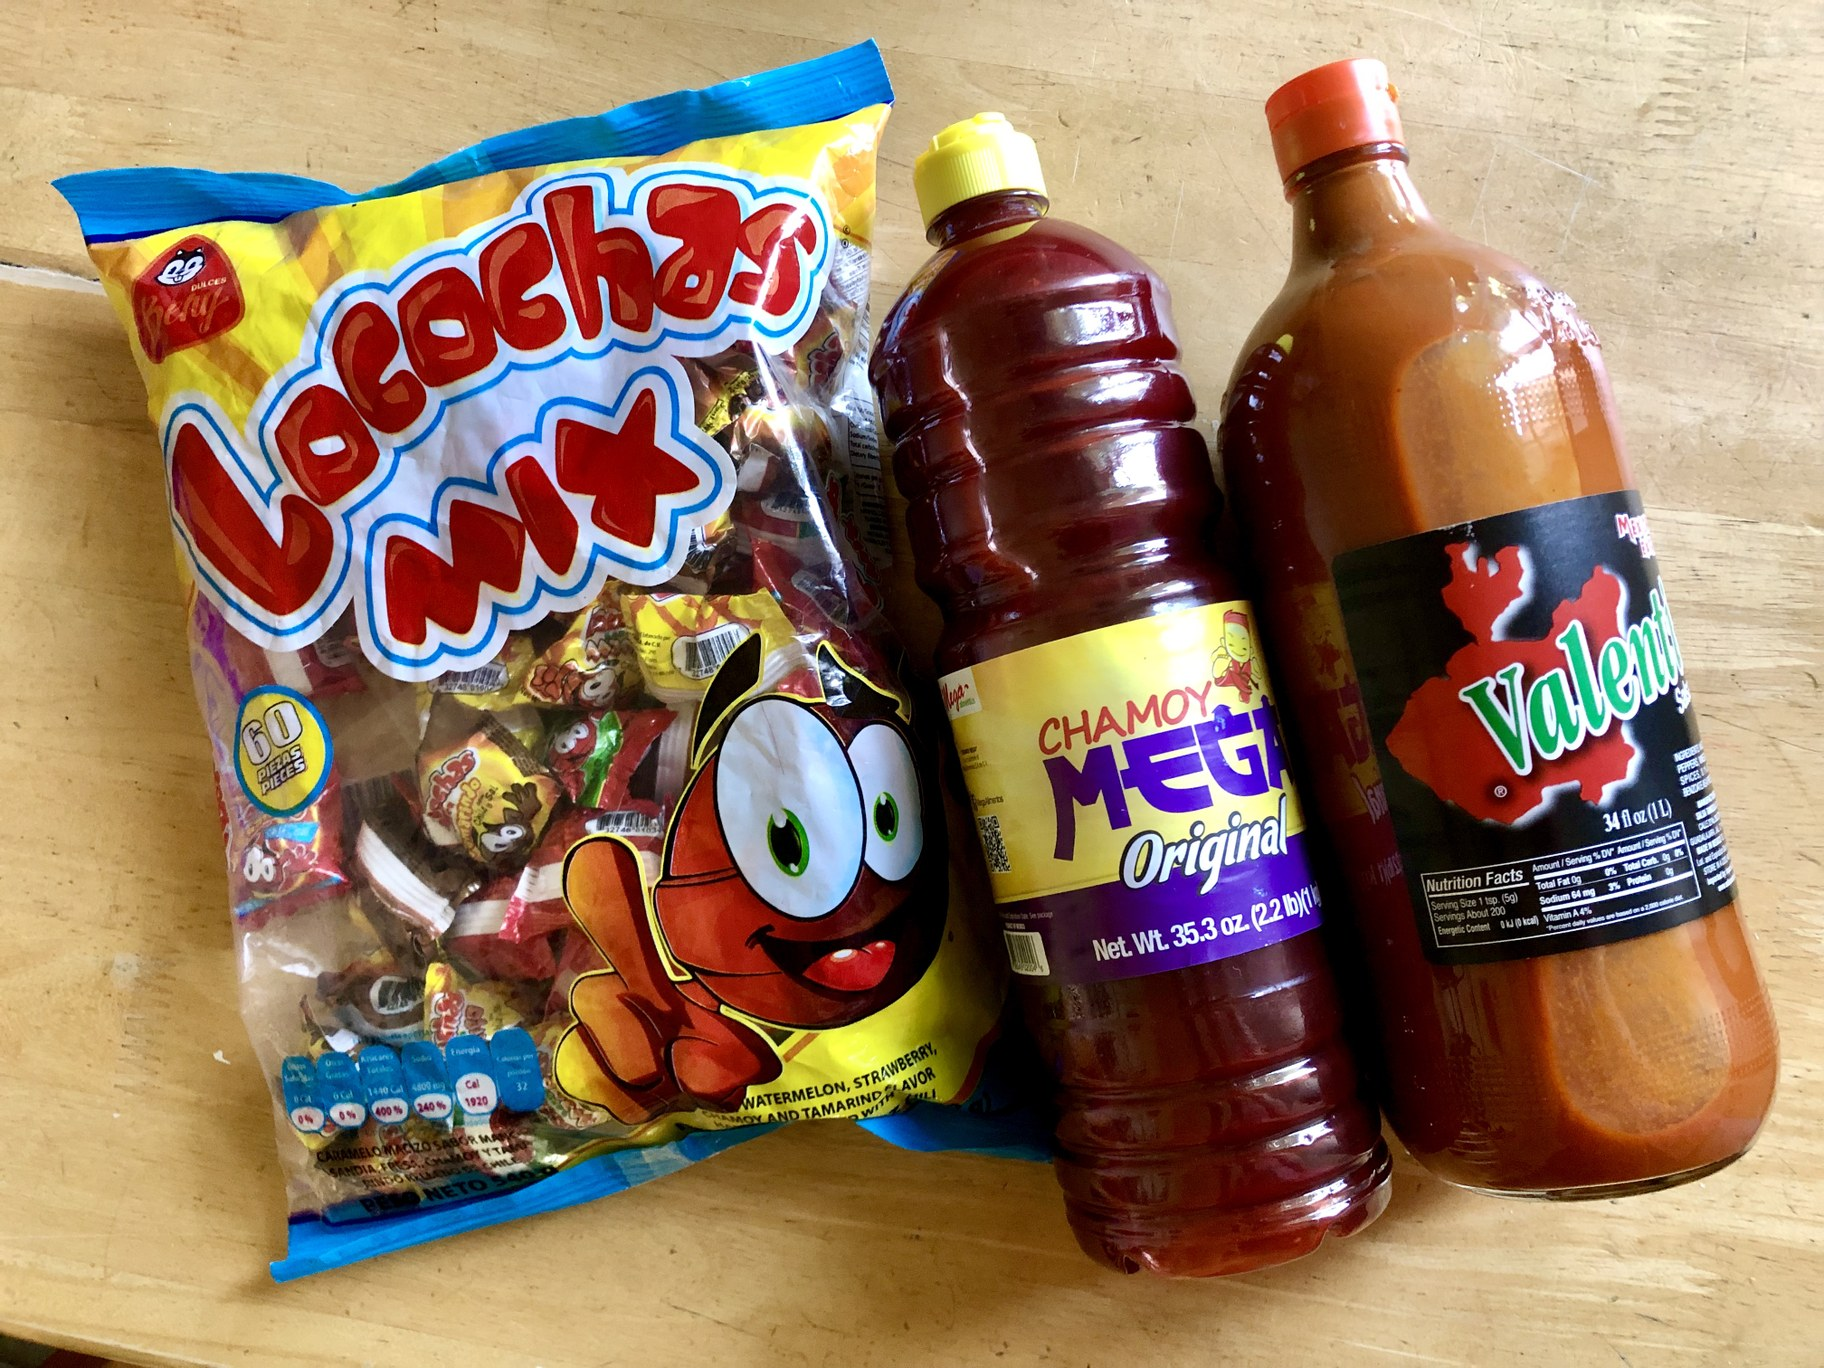 Chamoy_candy_hotsauce - by Richard Parks III.jpg